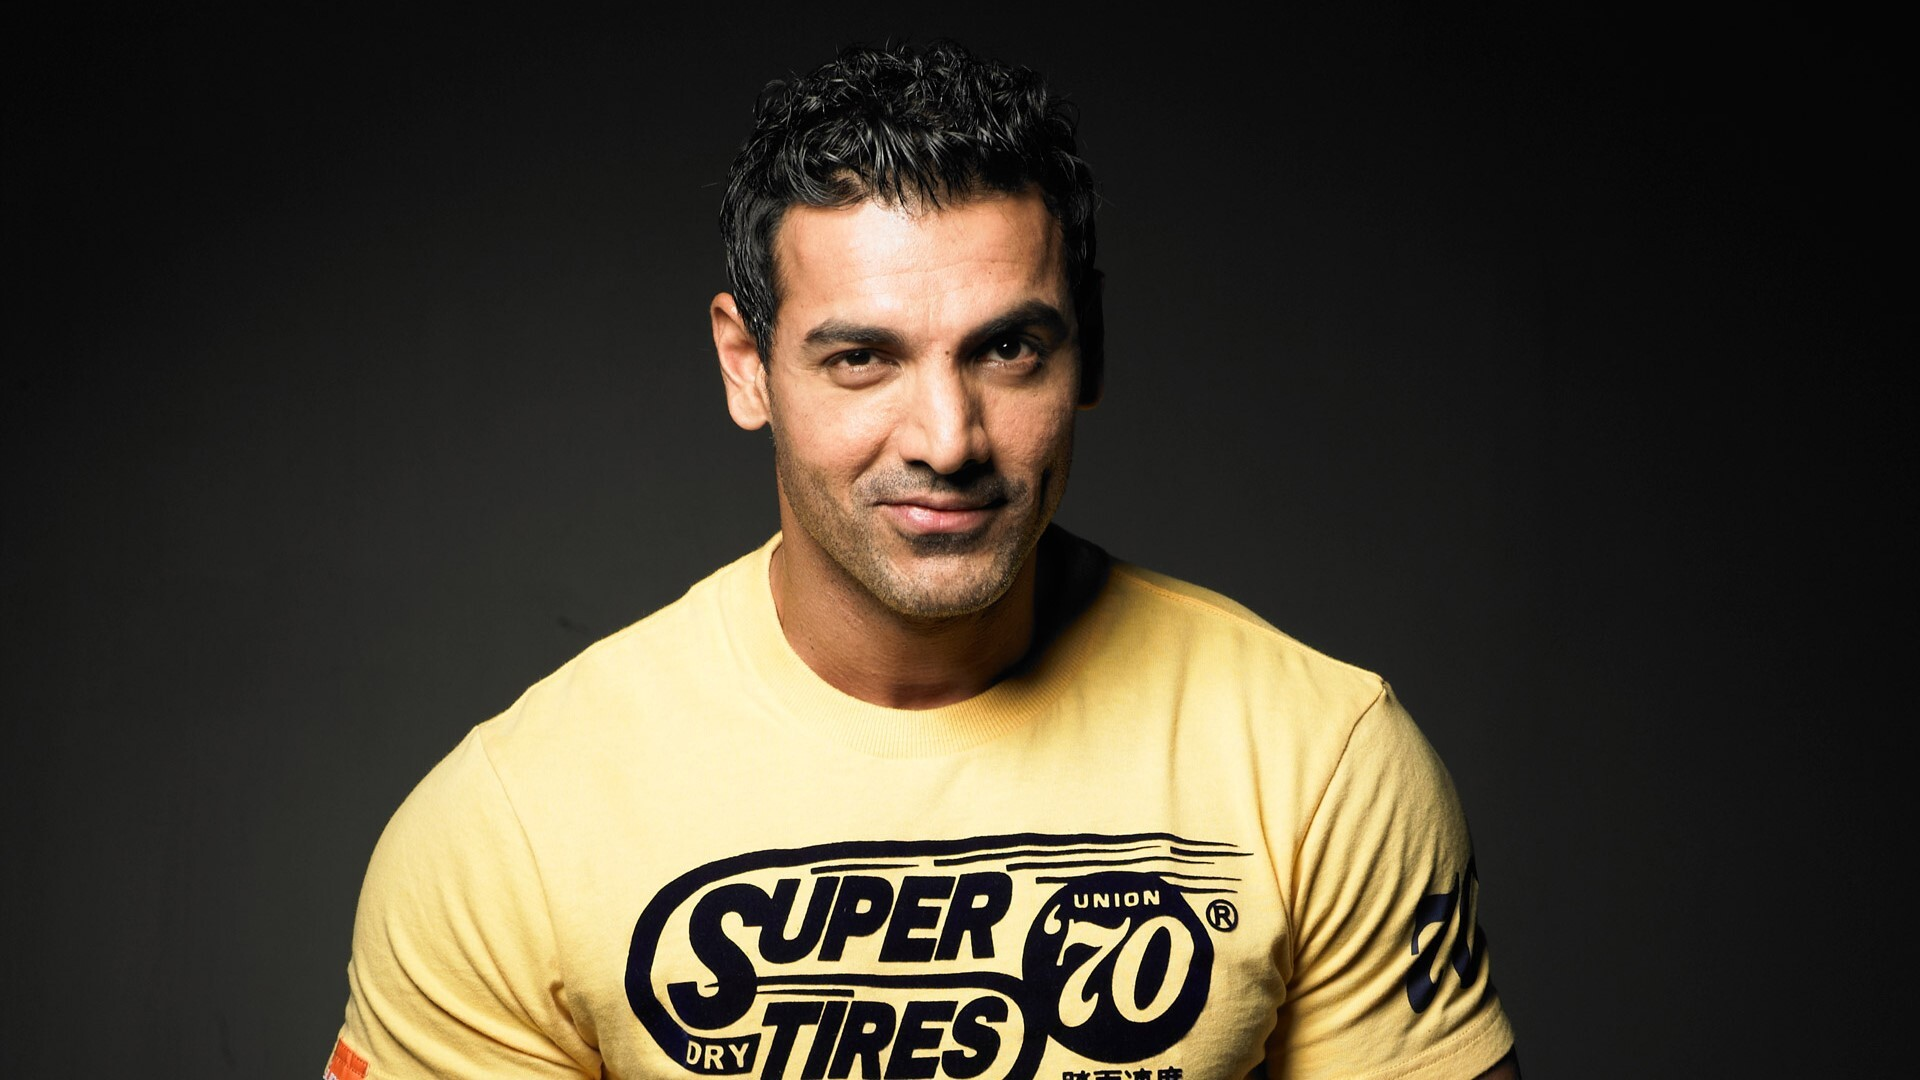 popular bollywood actor john abraham high quality wallpaper | hd